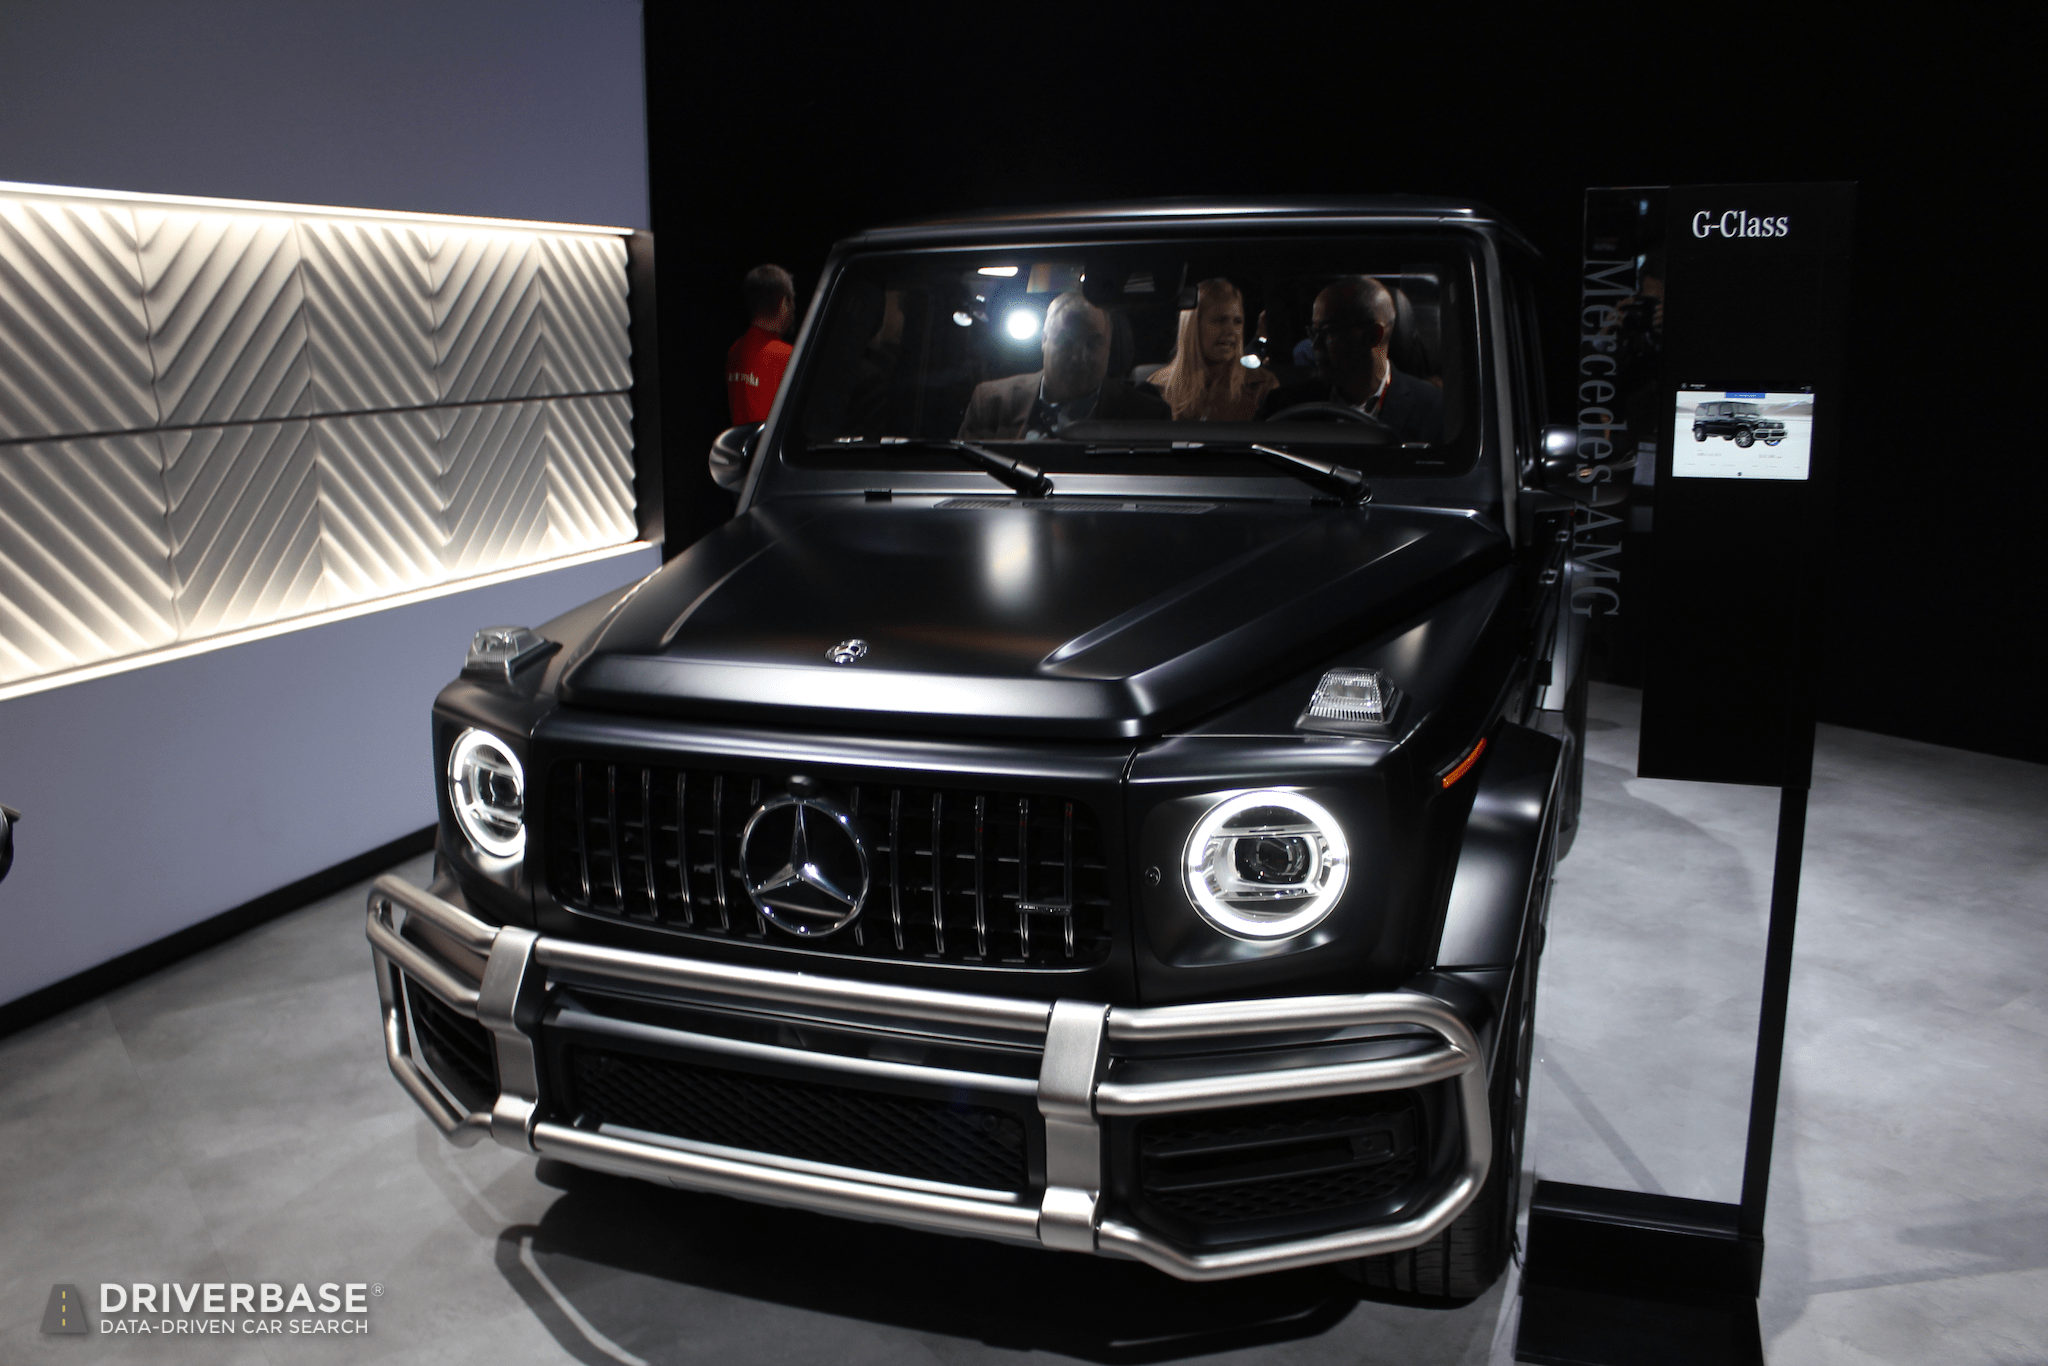 2020 Mercedes Benz Amg G Class Suv At The 2019 New York